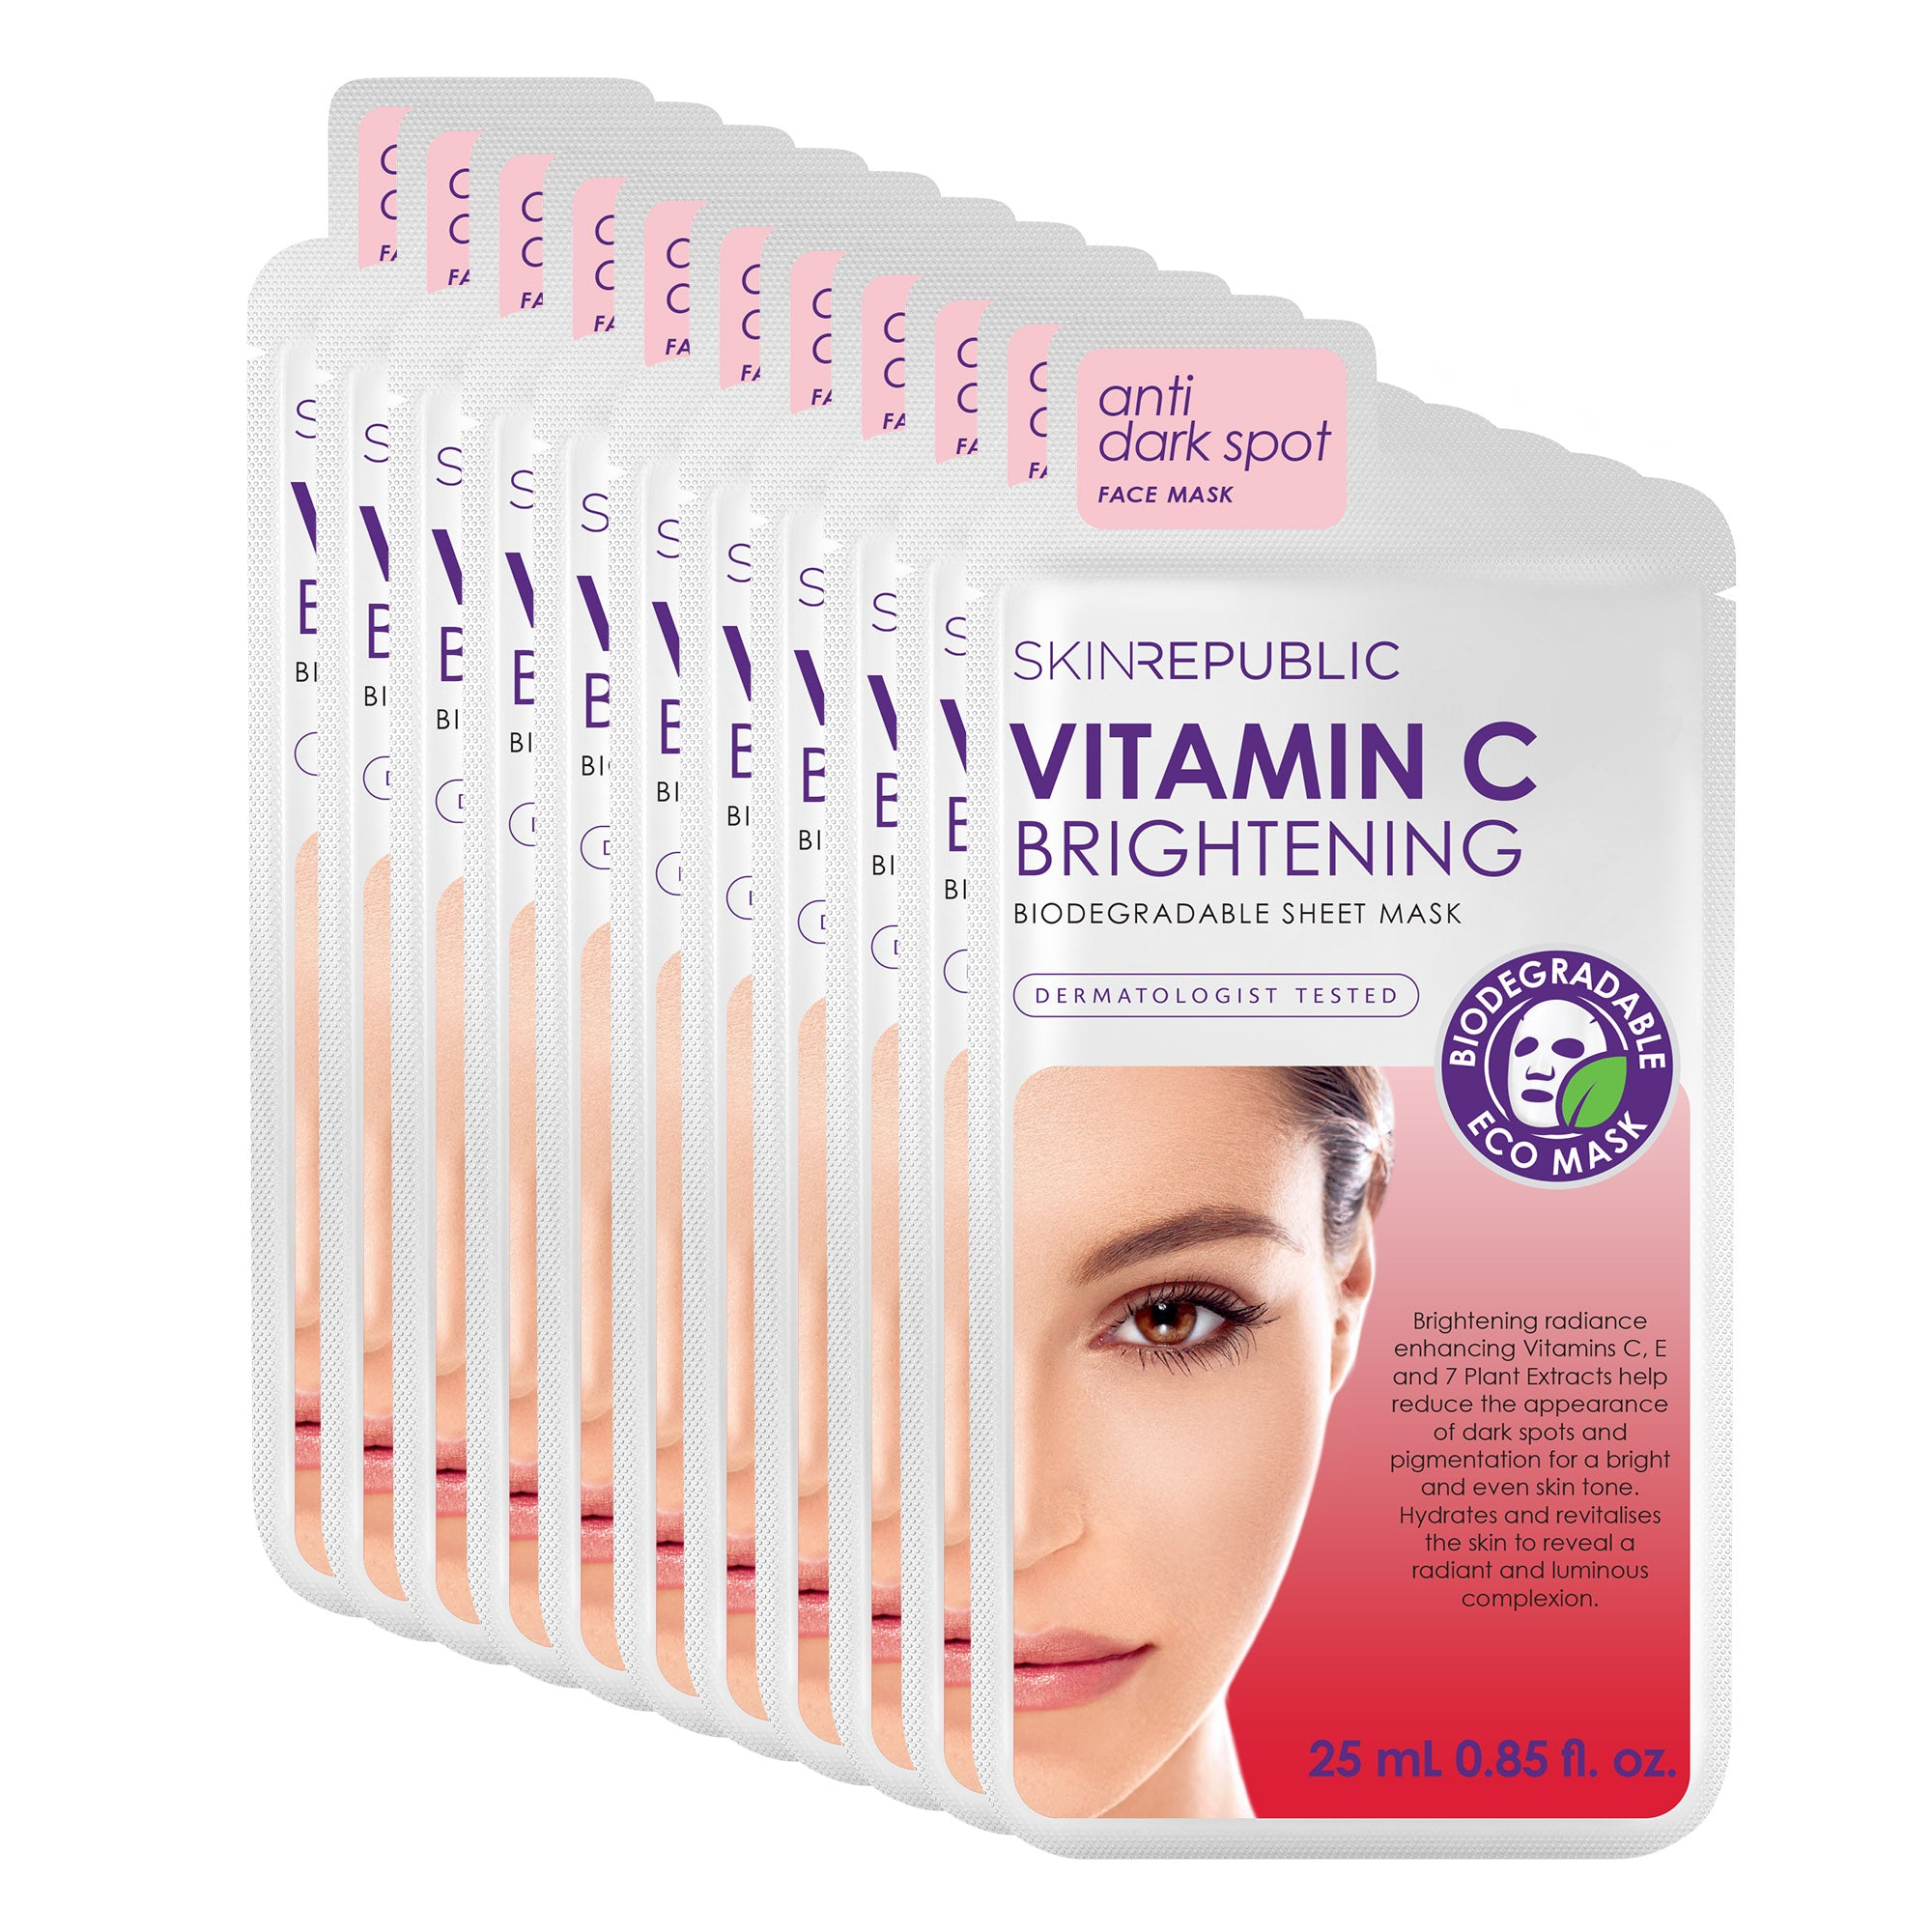 10 Pack Brightening Vitamin C Biodegradable Face Mask Sheet